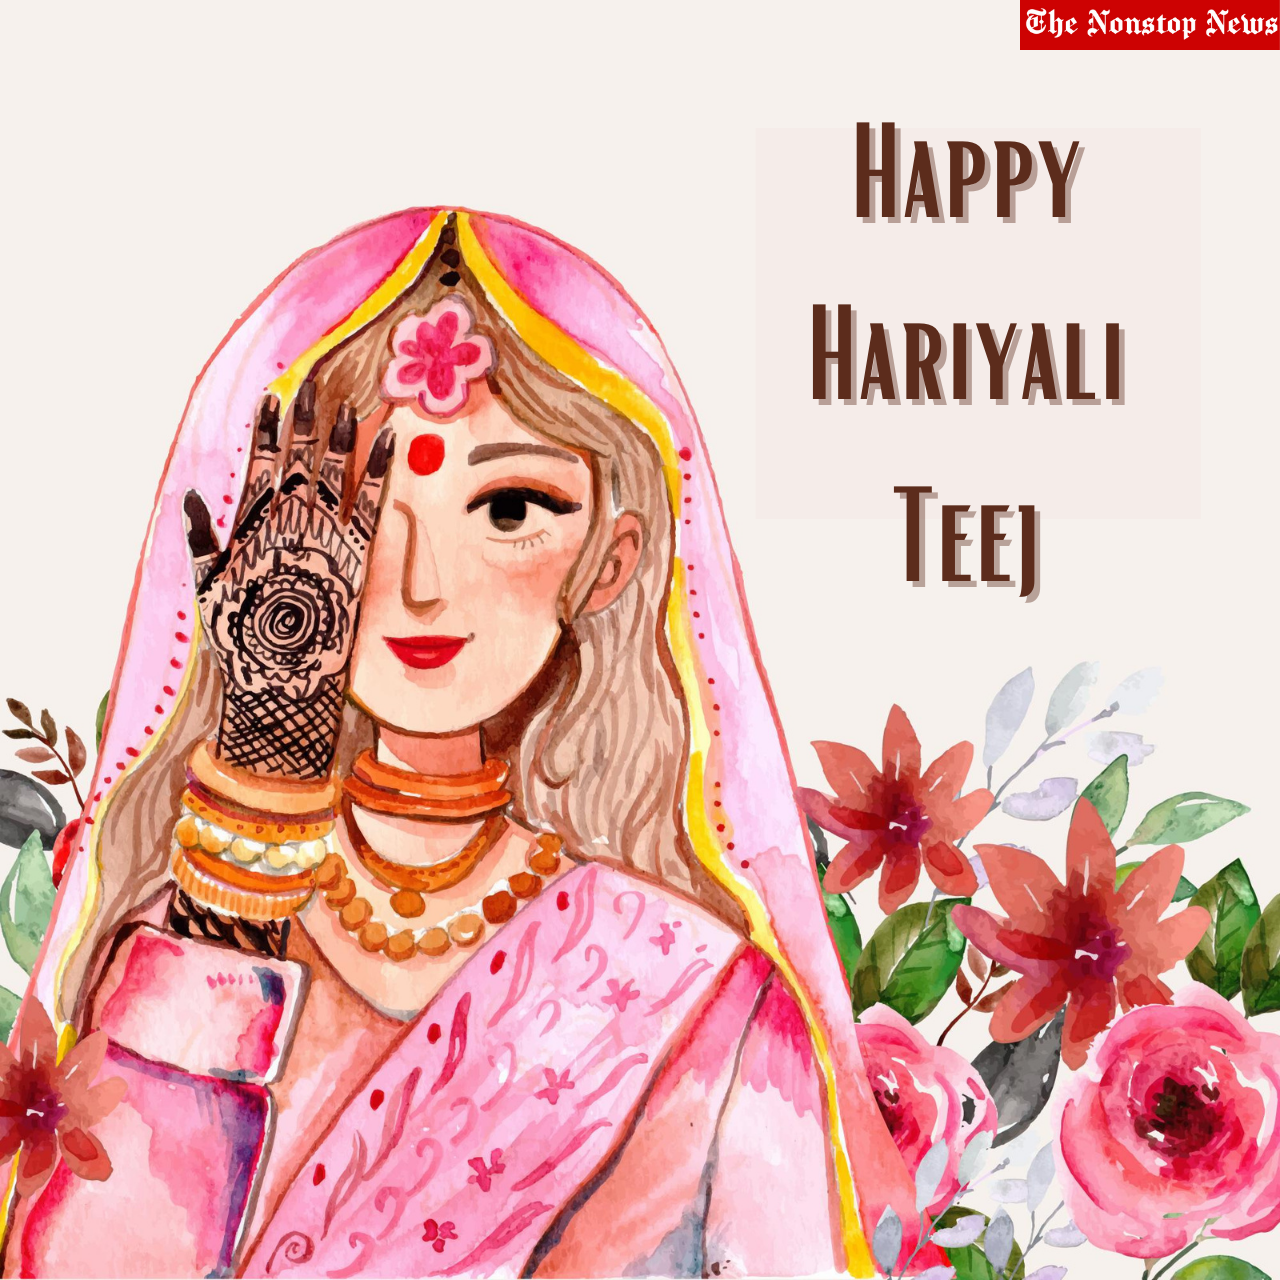 Hariyali Teej 2021 Wishes, Quotes, Greetings, Messages, HD Images, Wallpaper, and Status to Share